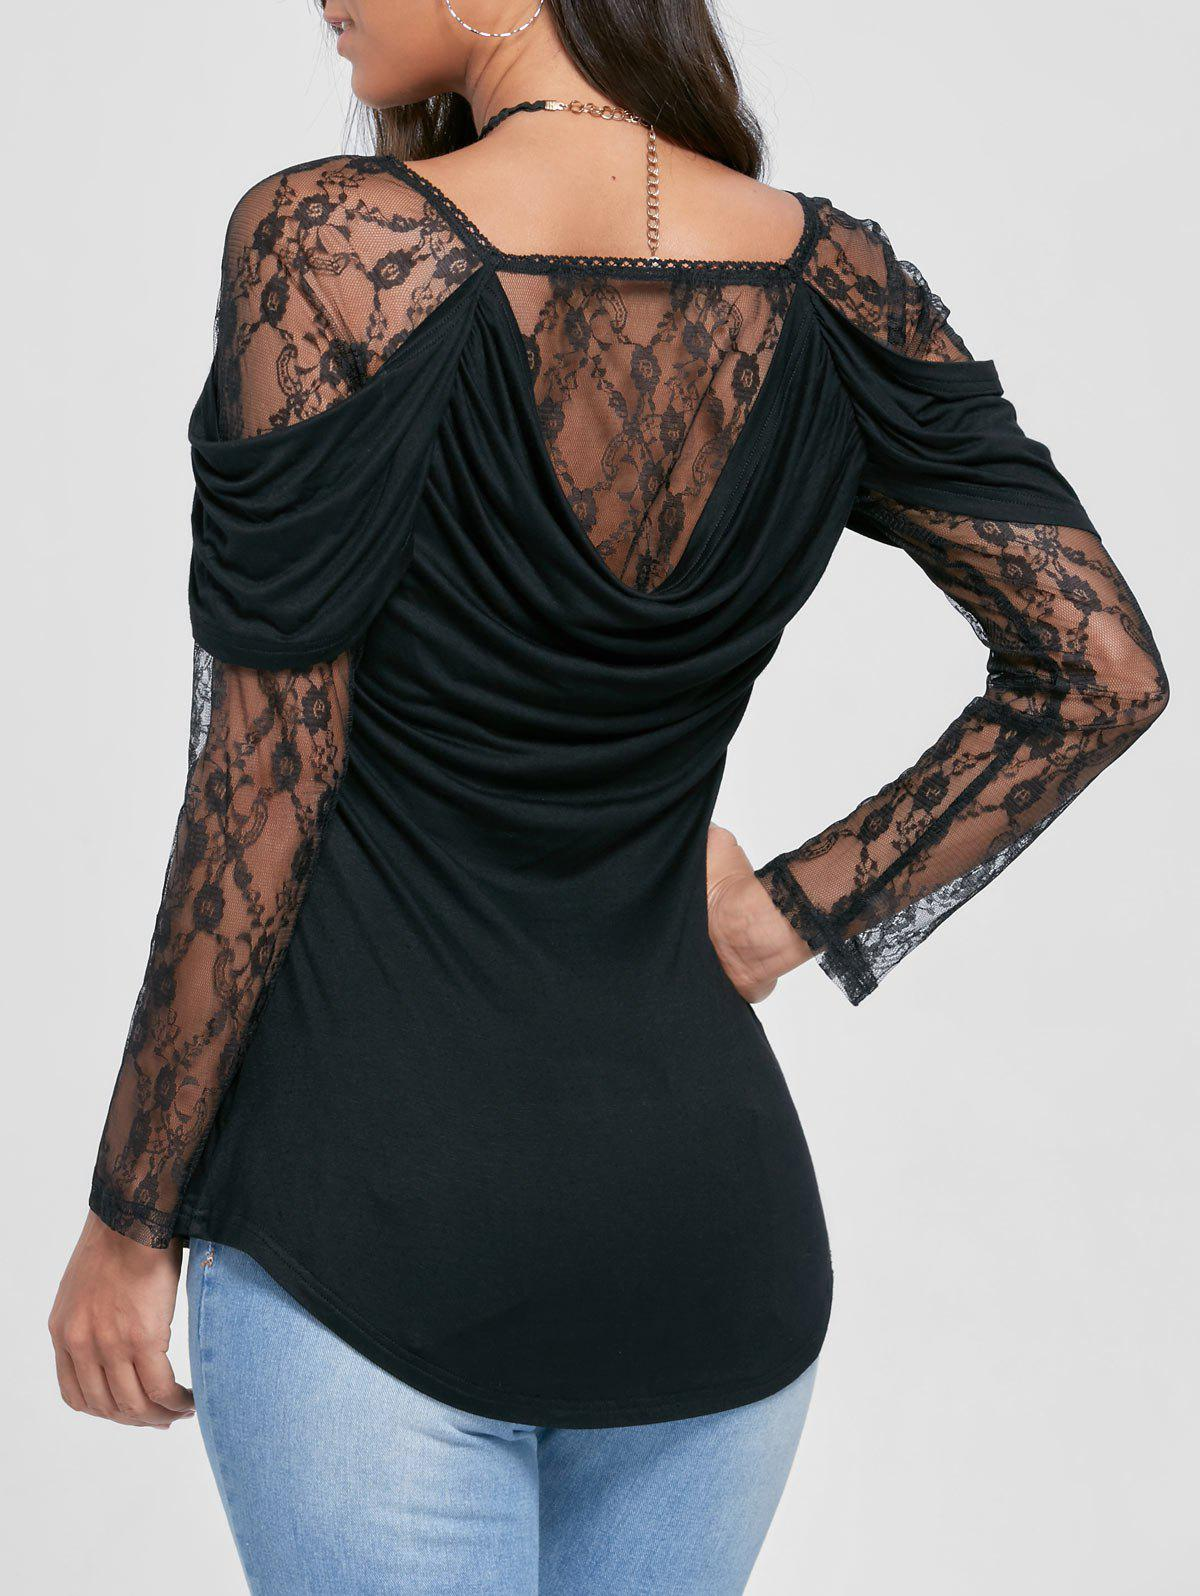 Sheer Lace Yoke Cowl Back TopWOMEN<br><br>Size: XL; Color: BLACK; Material: Rayon,Spandex; Shirt Length: Regular; Sleeve Length: Full; Collar: Square Neck; Style: Fashion; Embellishment: Lace; Pattern Type: Others; Season: Fall,Spring,Summer; Weight: 0.3400kg; Package Contents: 1 x Top;